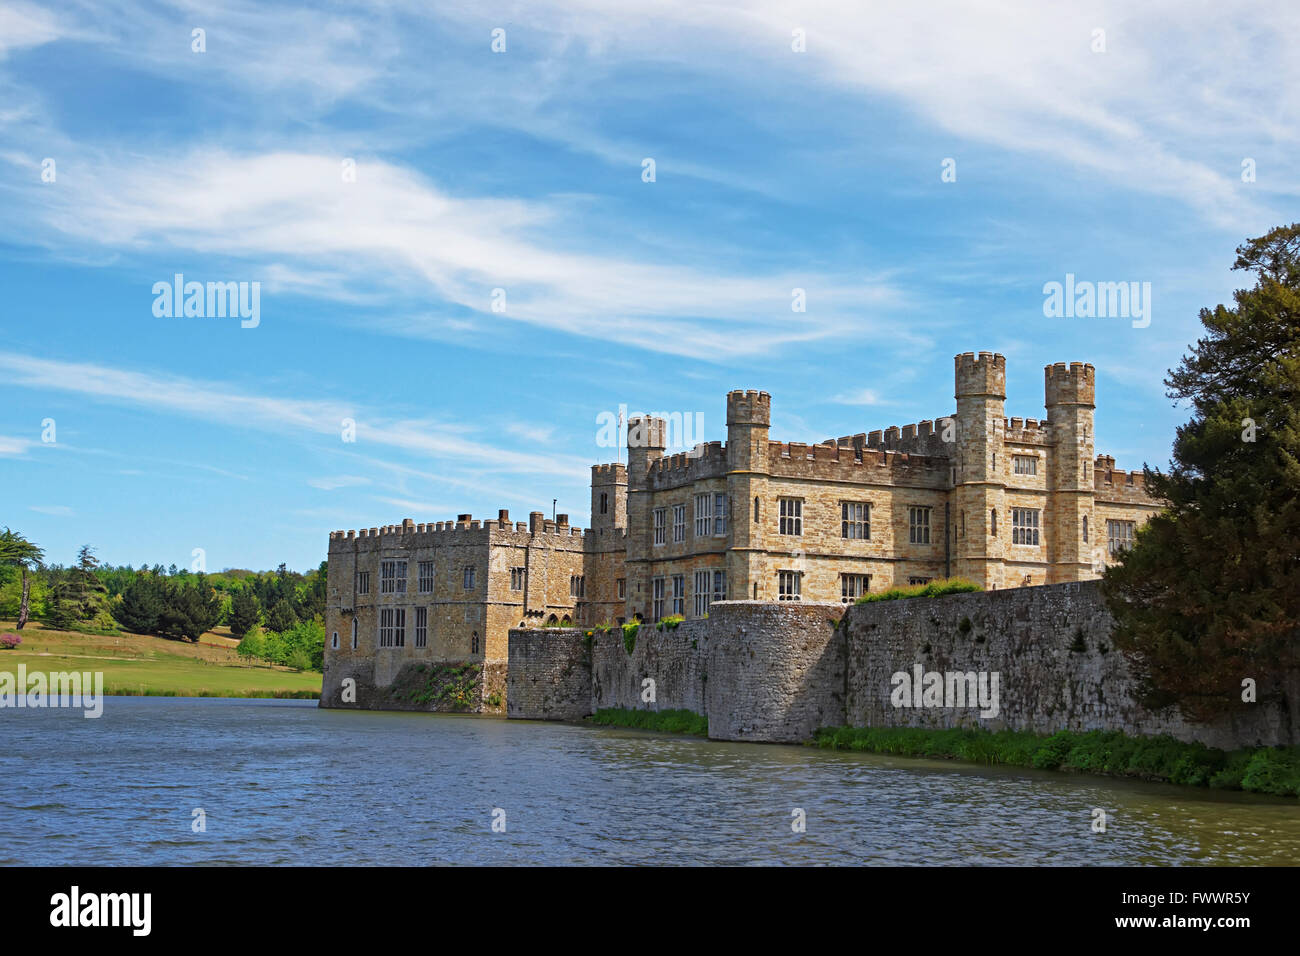 Leeds Castle in a lake in Kent in England. The castle was built in the twelfth century as a king residence. Now - Stock Image